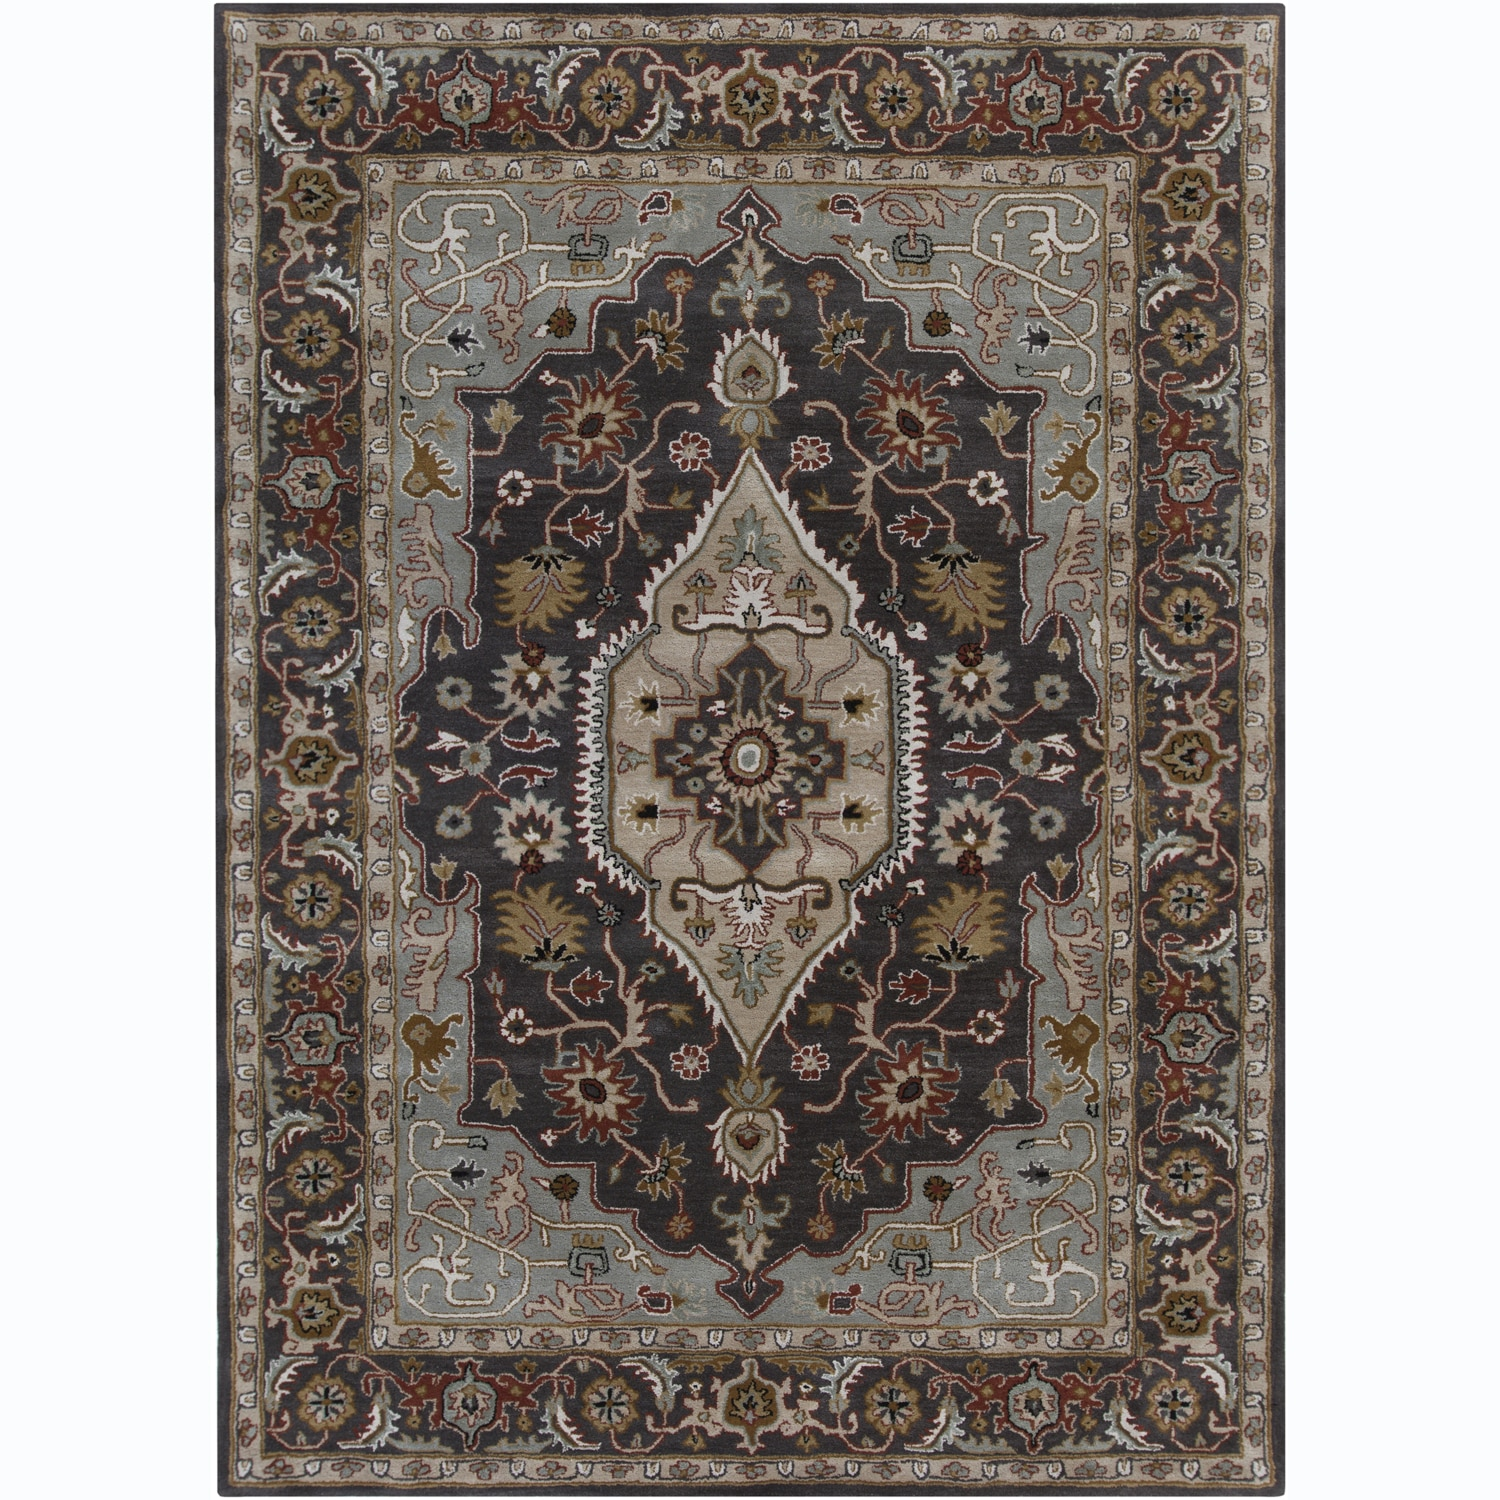 Hand Knotted Persian Style Wool Pile Area Rug: Share: